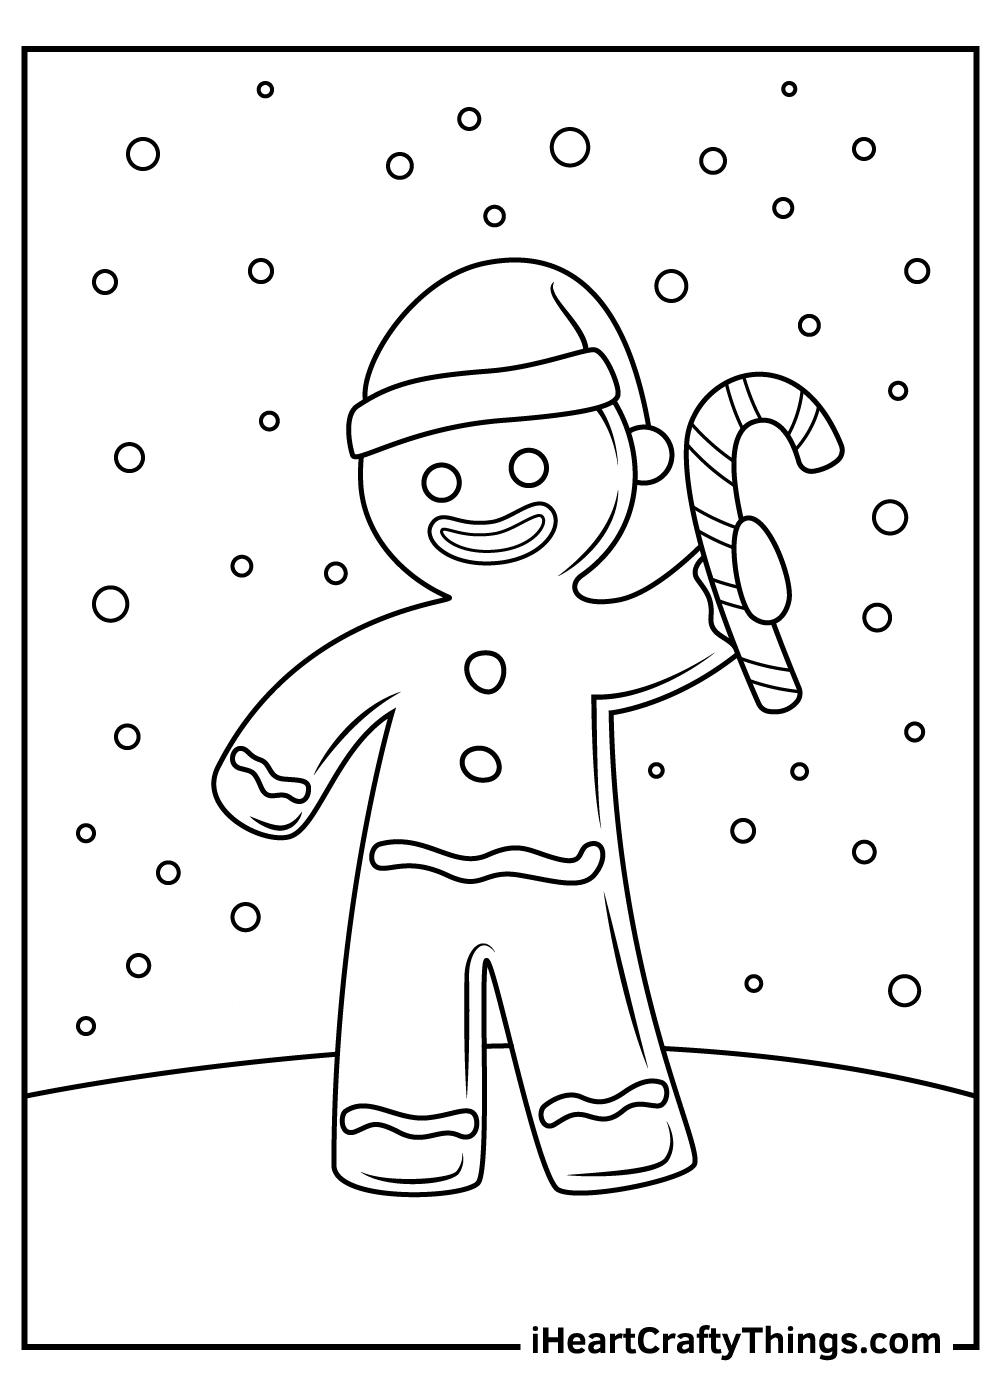 Cute Christmas Gingerbread Coloring Pages